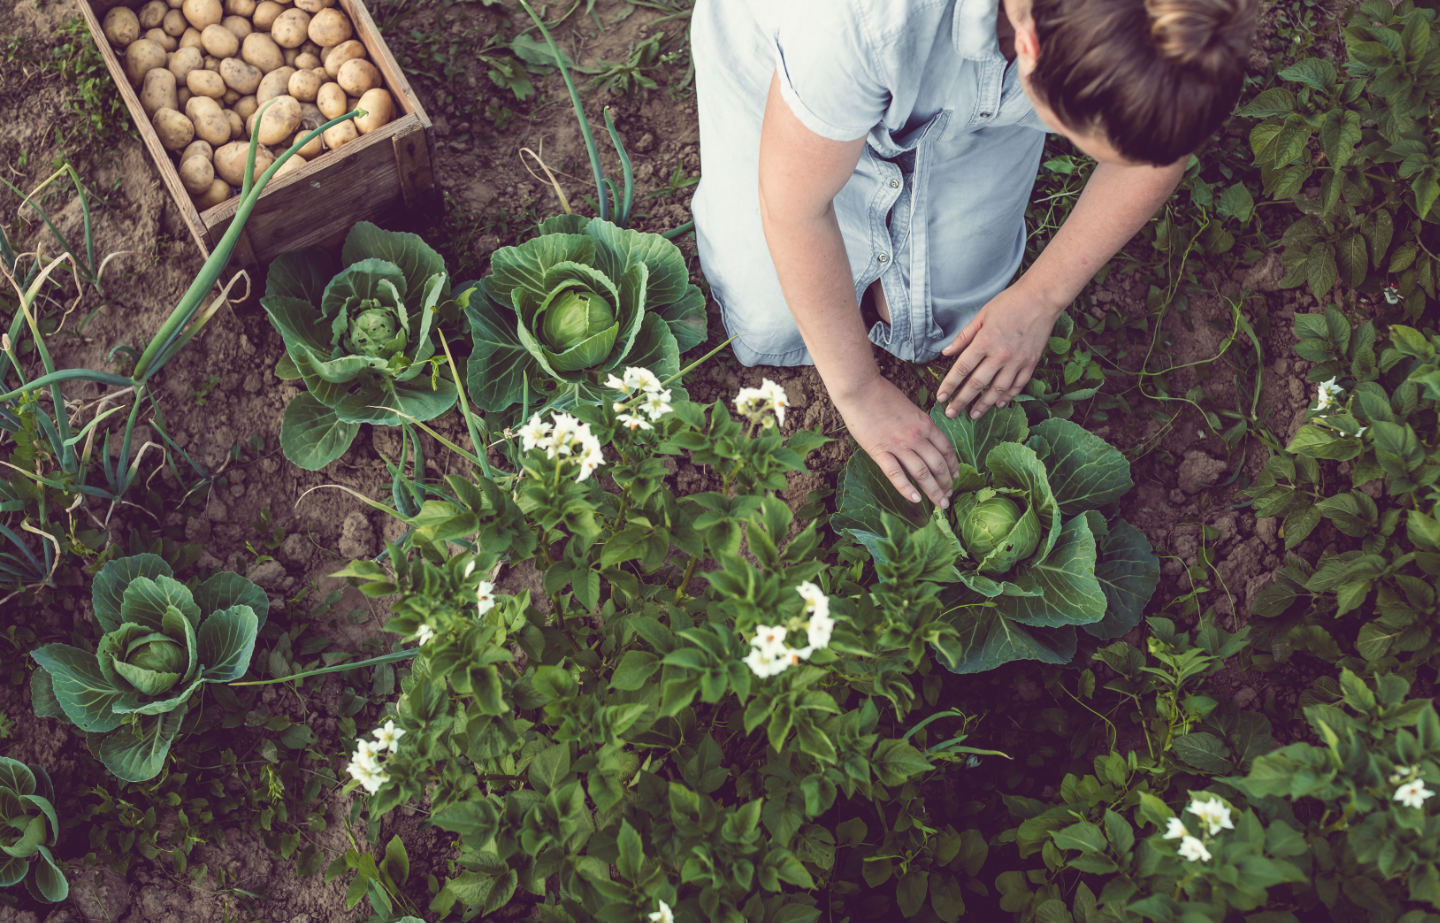 Young Woman Working in a Home Grown Vegetable Garden